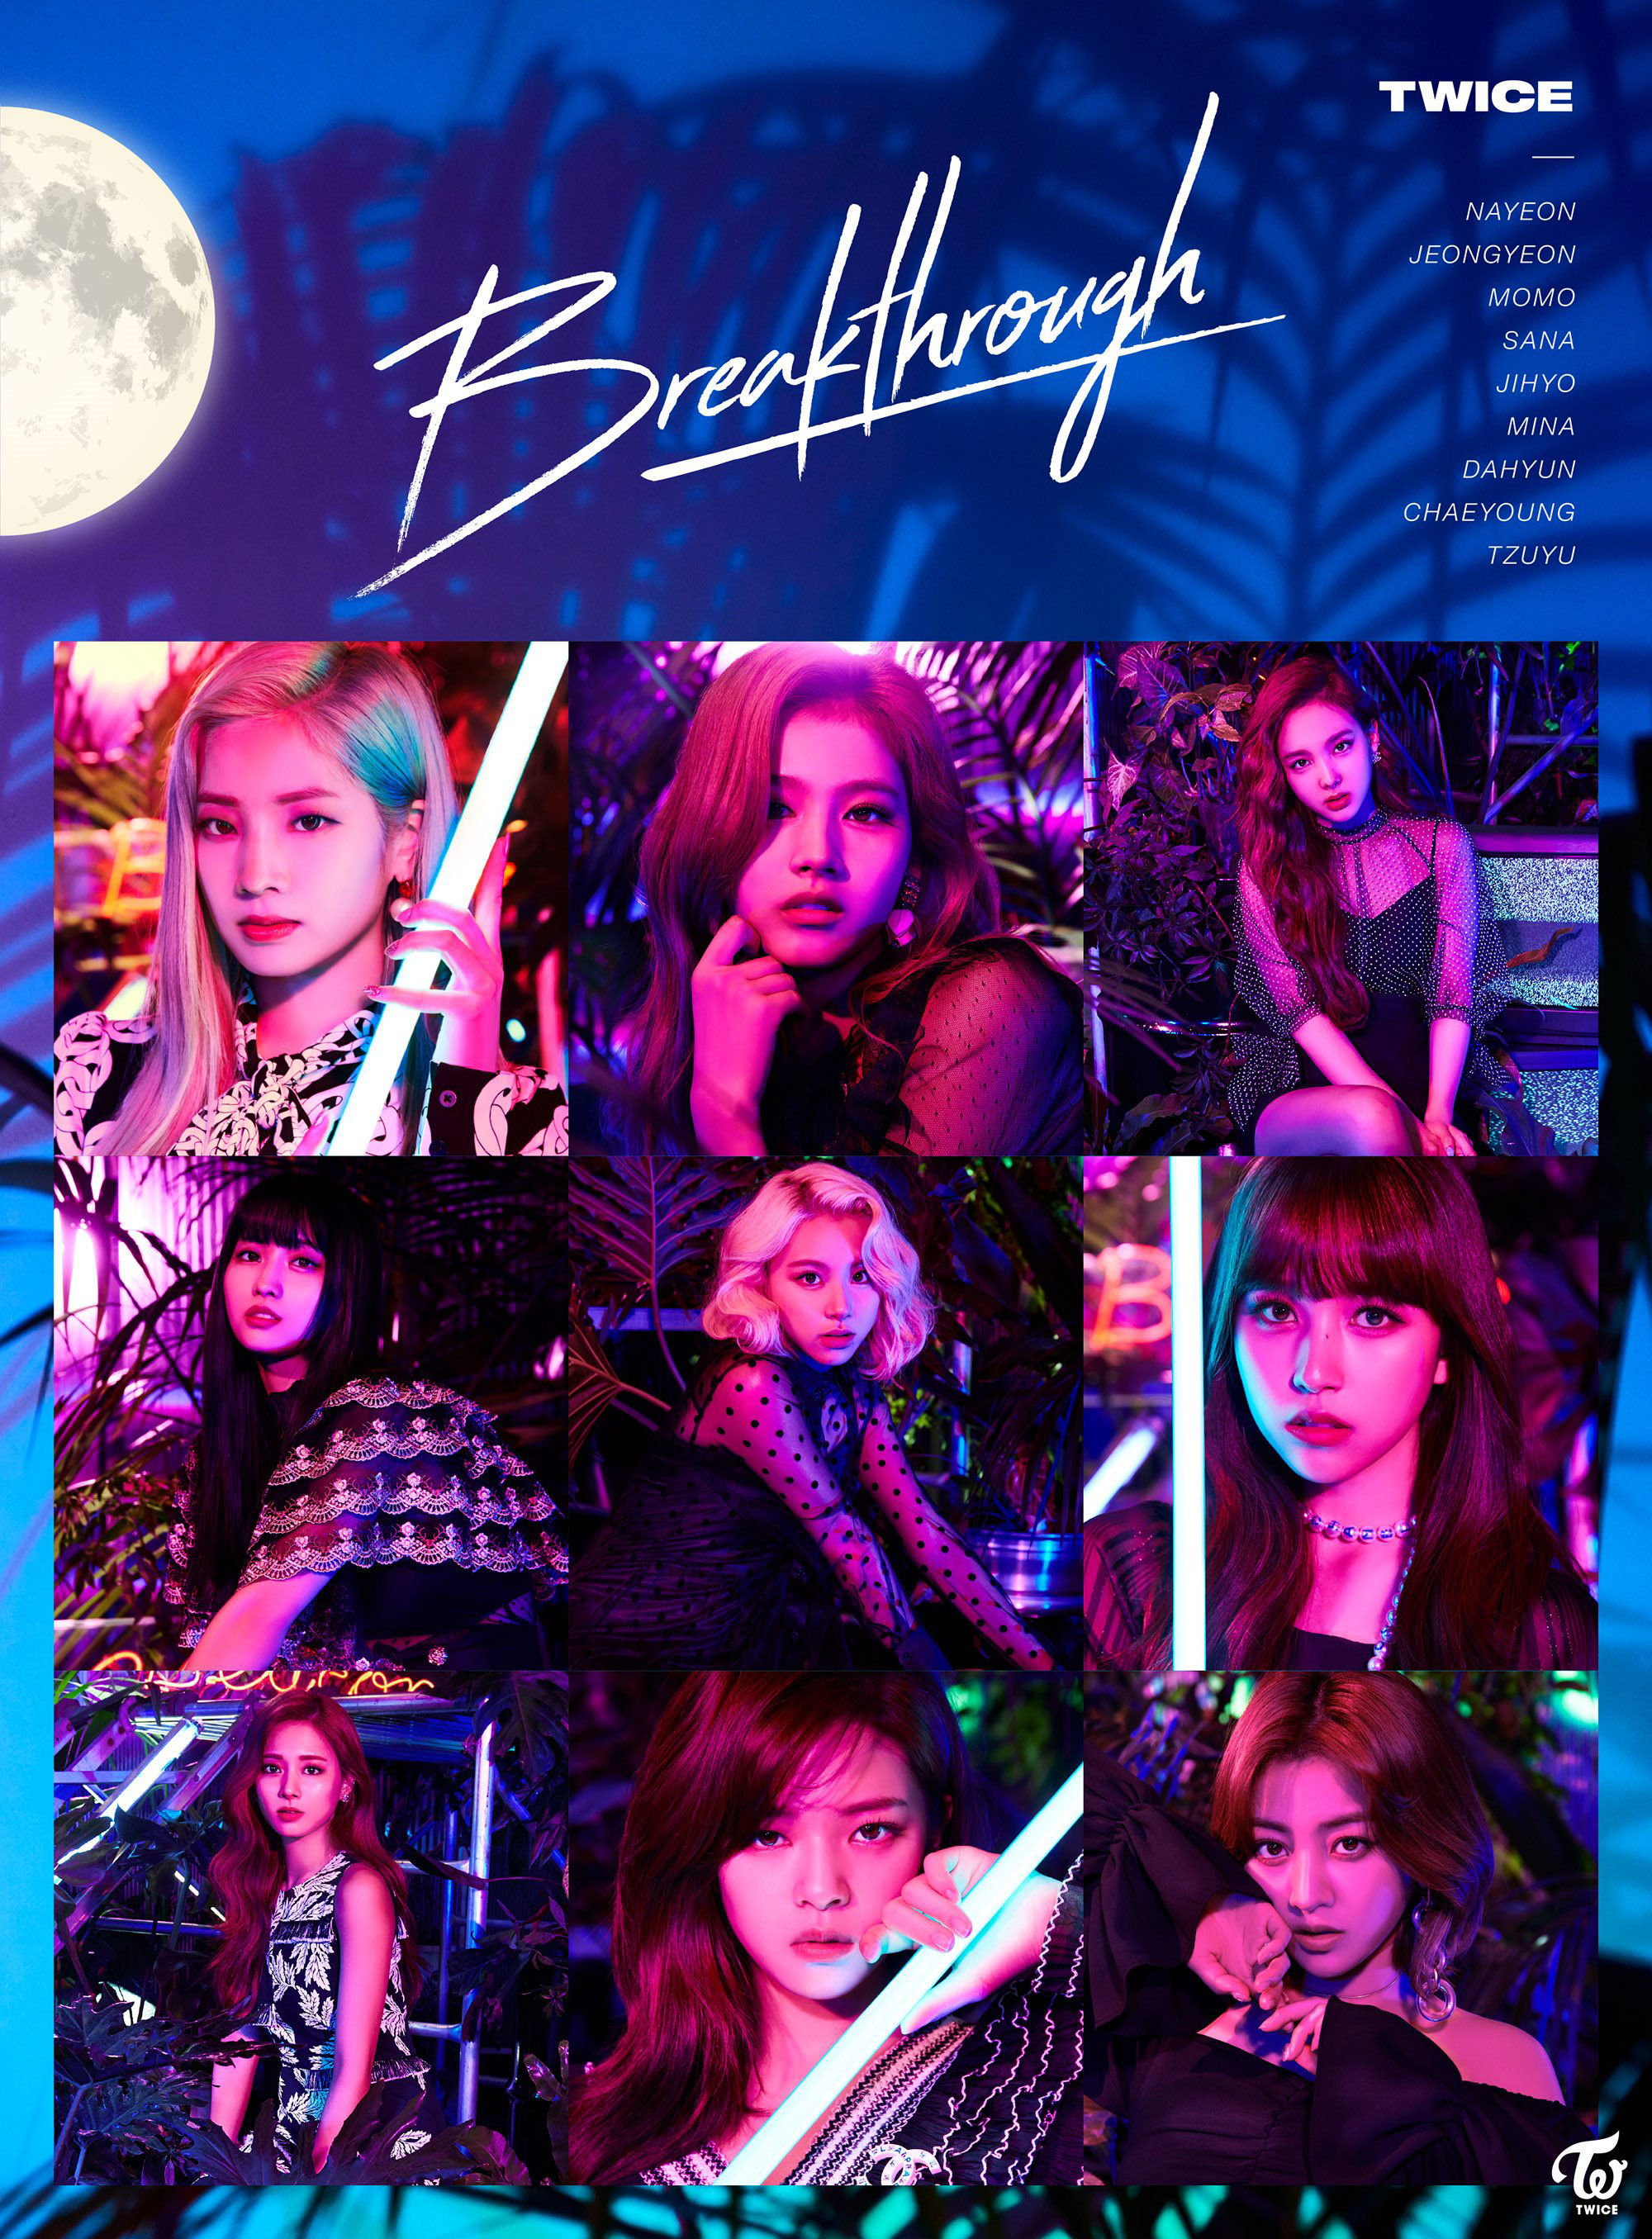 TWICE Breakthrough group poster 2.png